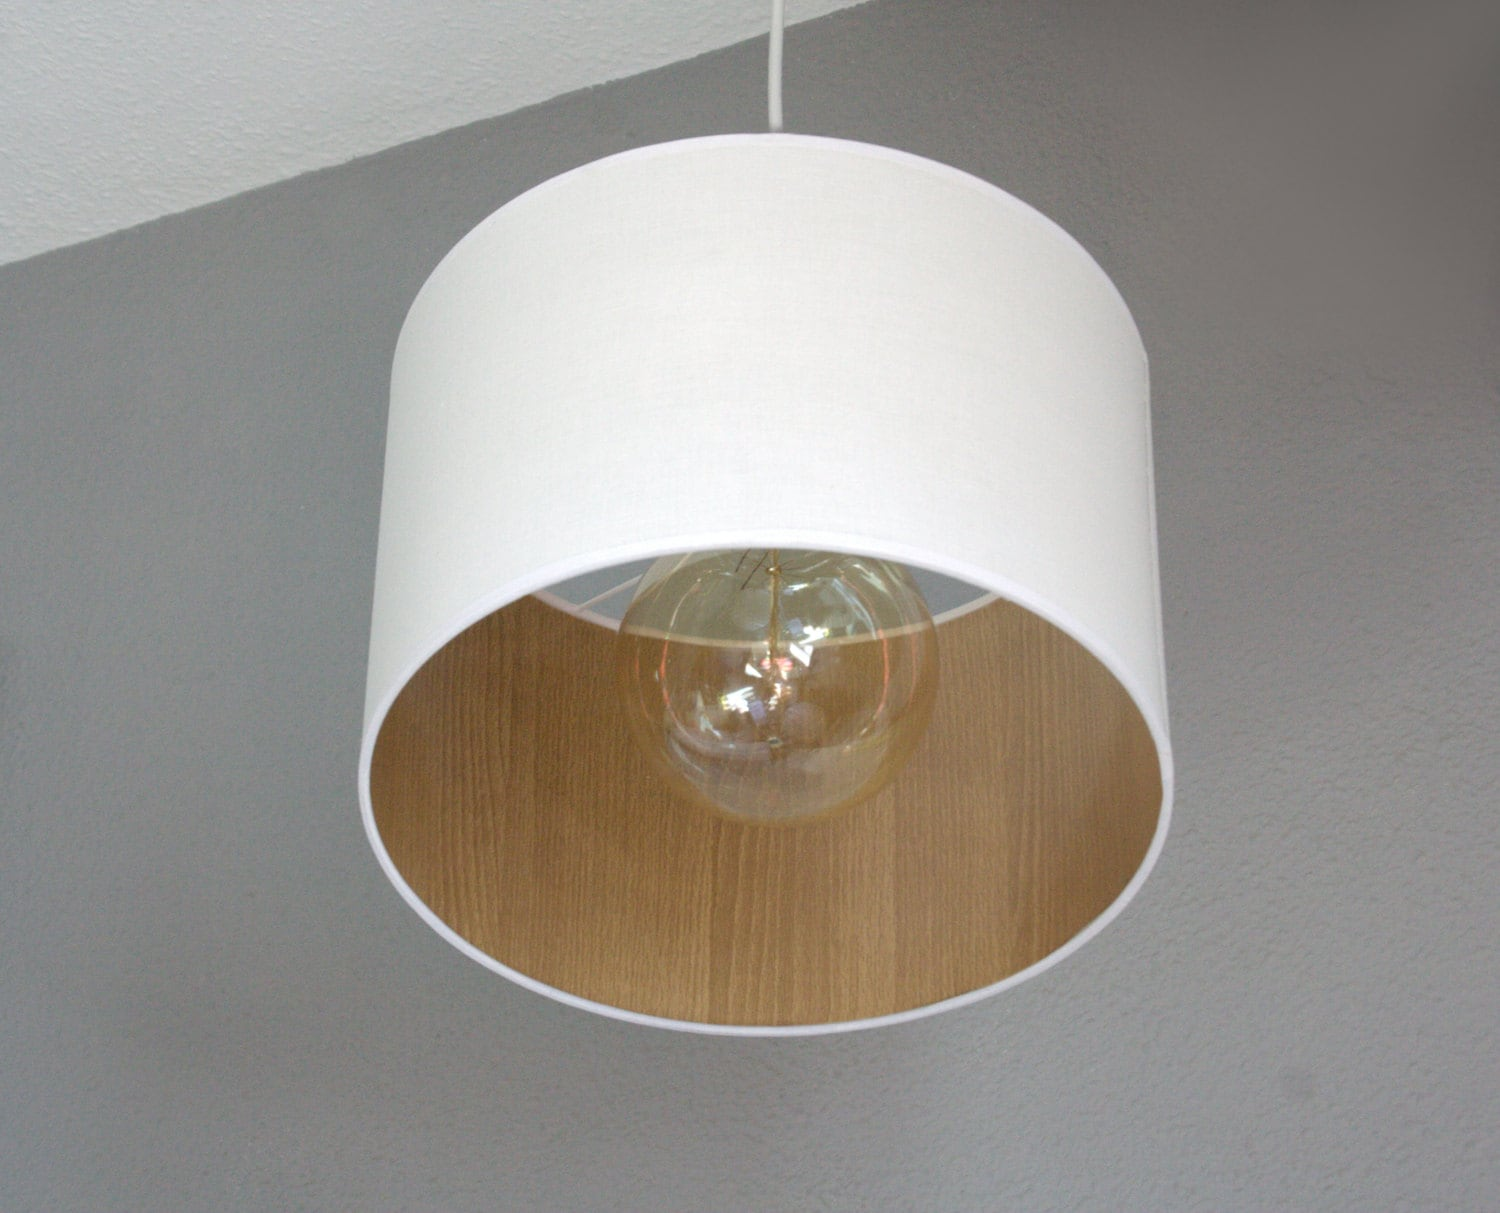 Ceiling Light Shades White Pendant Lampshade Wood Interior Elegant White Lamp Shades